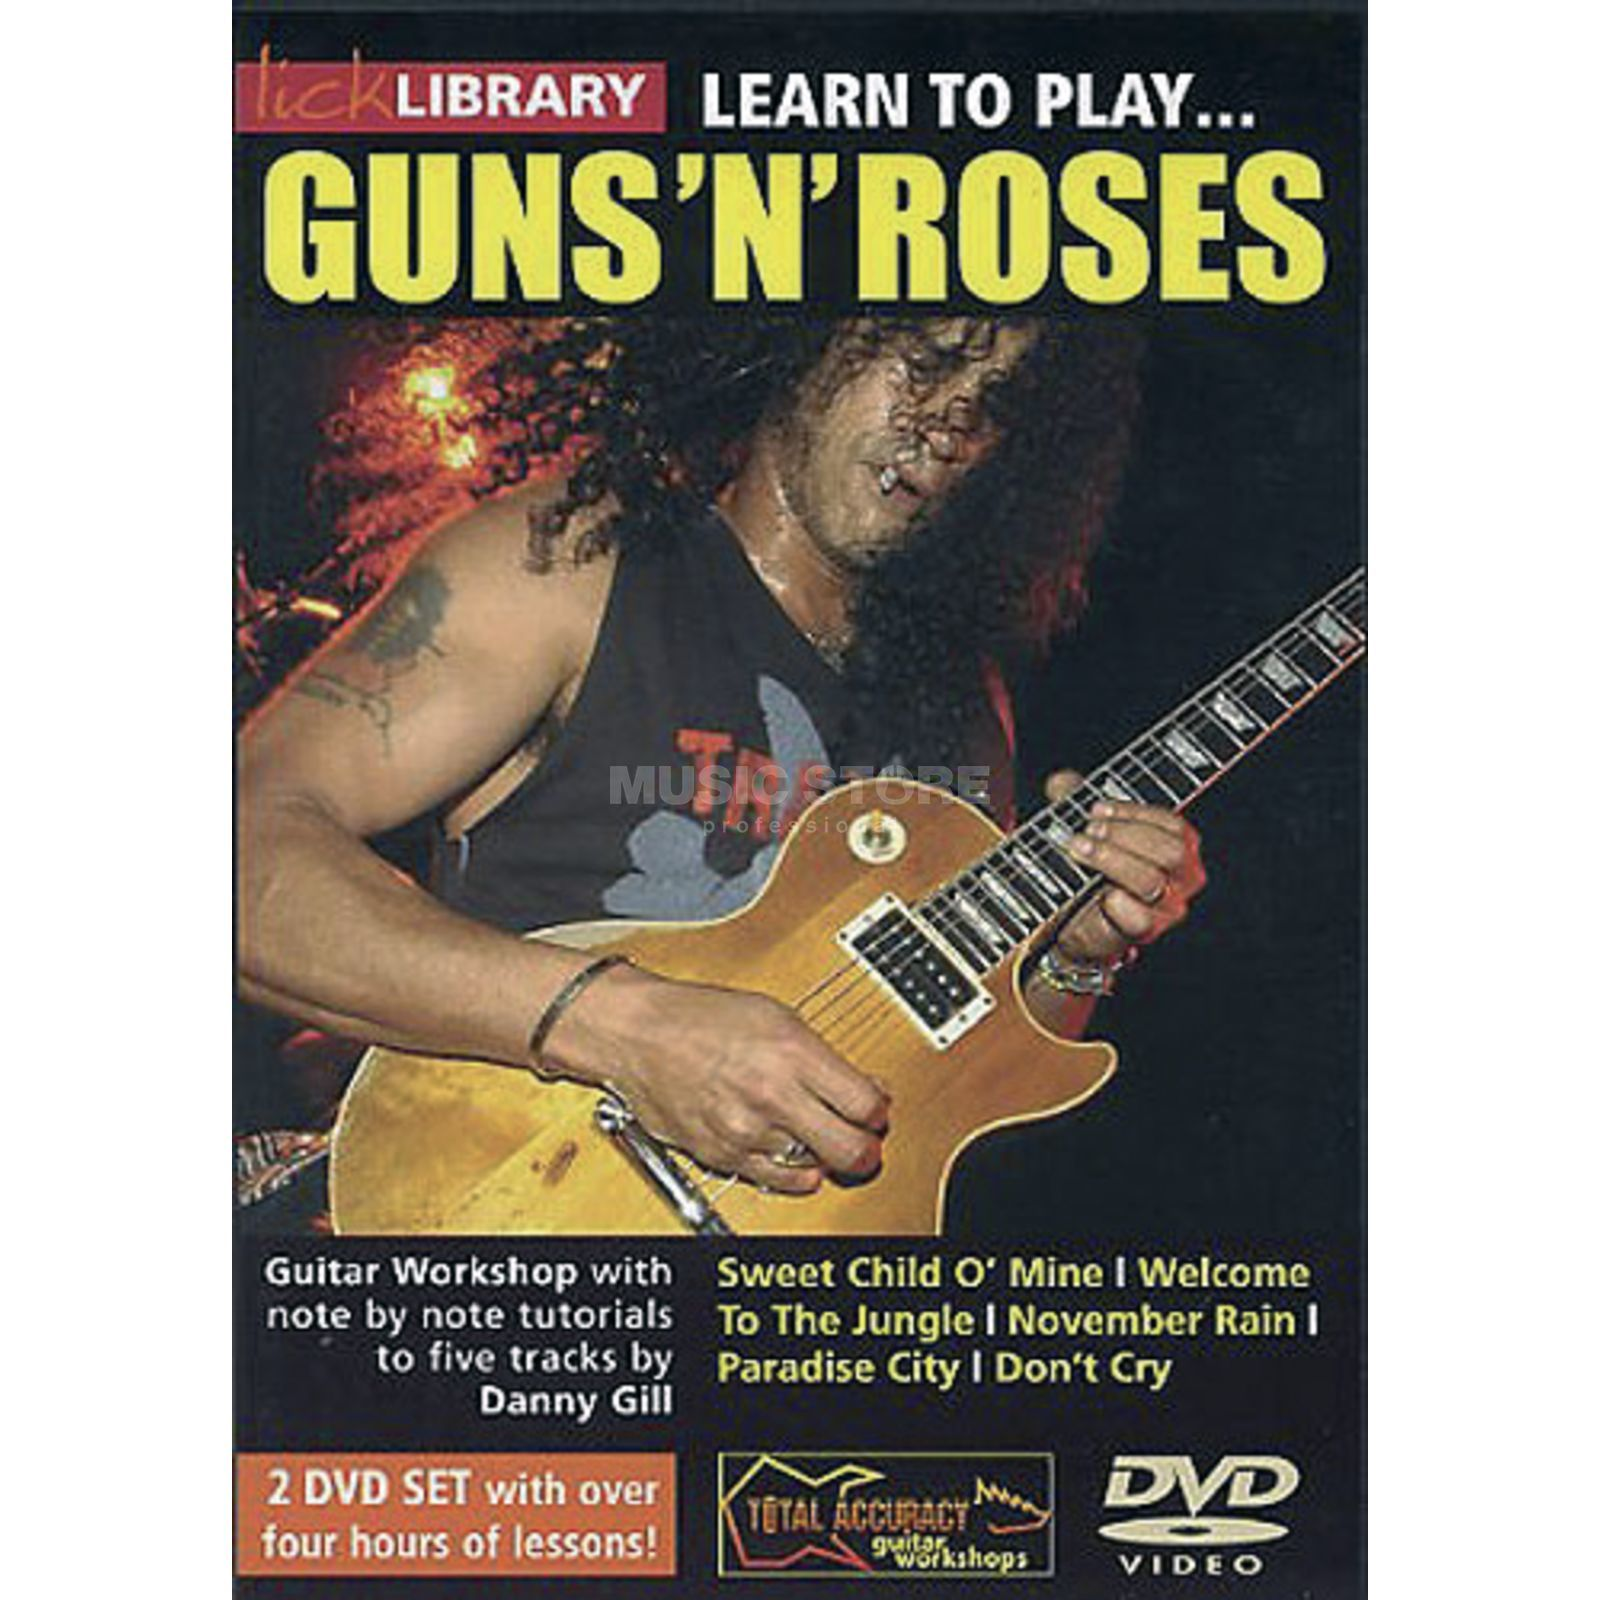 Roadrock International  Lick Library: Learn To Play Guns 'N' Roses DVD Produktbild